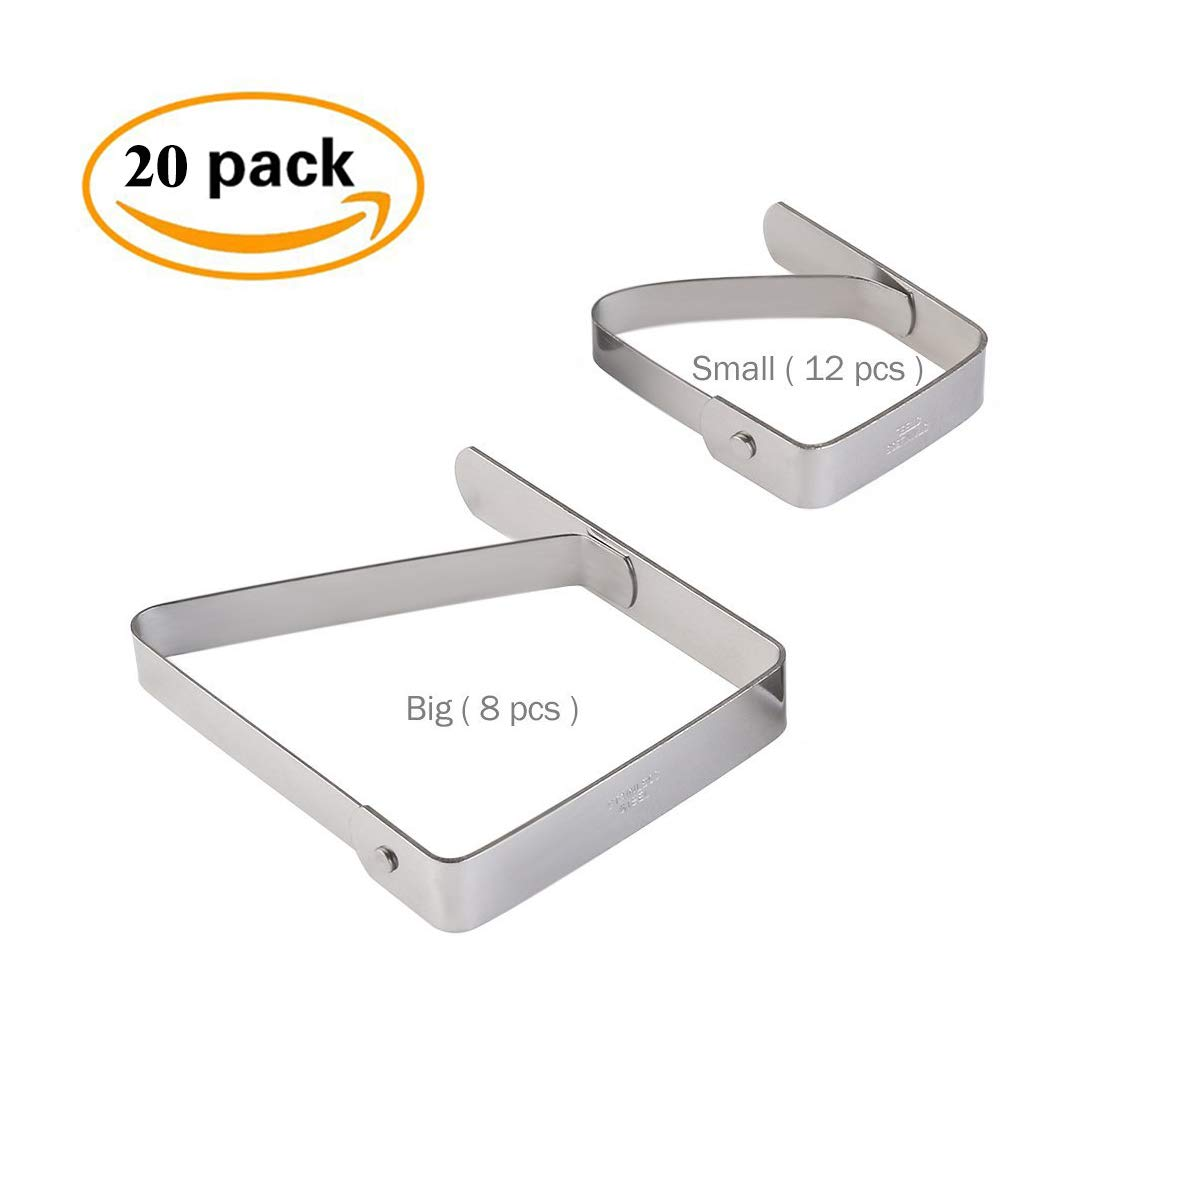 snowcc Stainless Steel Table Cloth Clip Table Cover Clamps for Indoor, Outdoor, Home, Wedding, Party and Picnic, Pack of 20 by snowcc